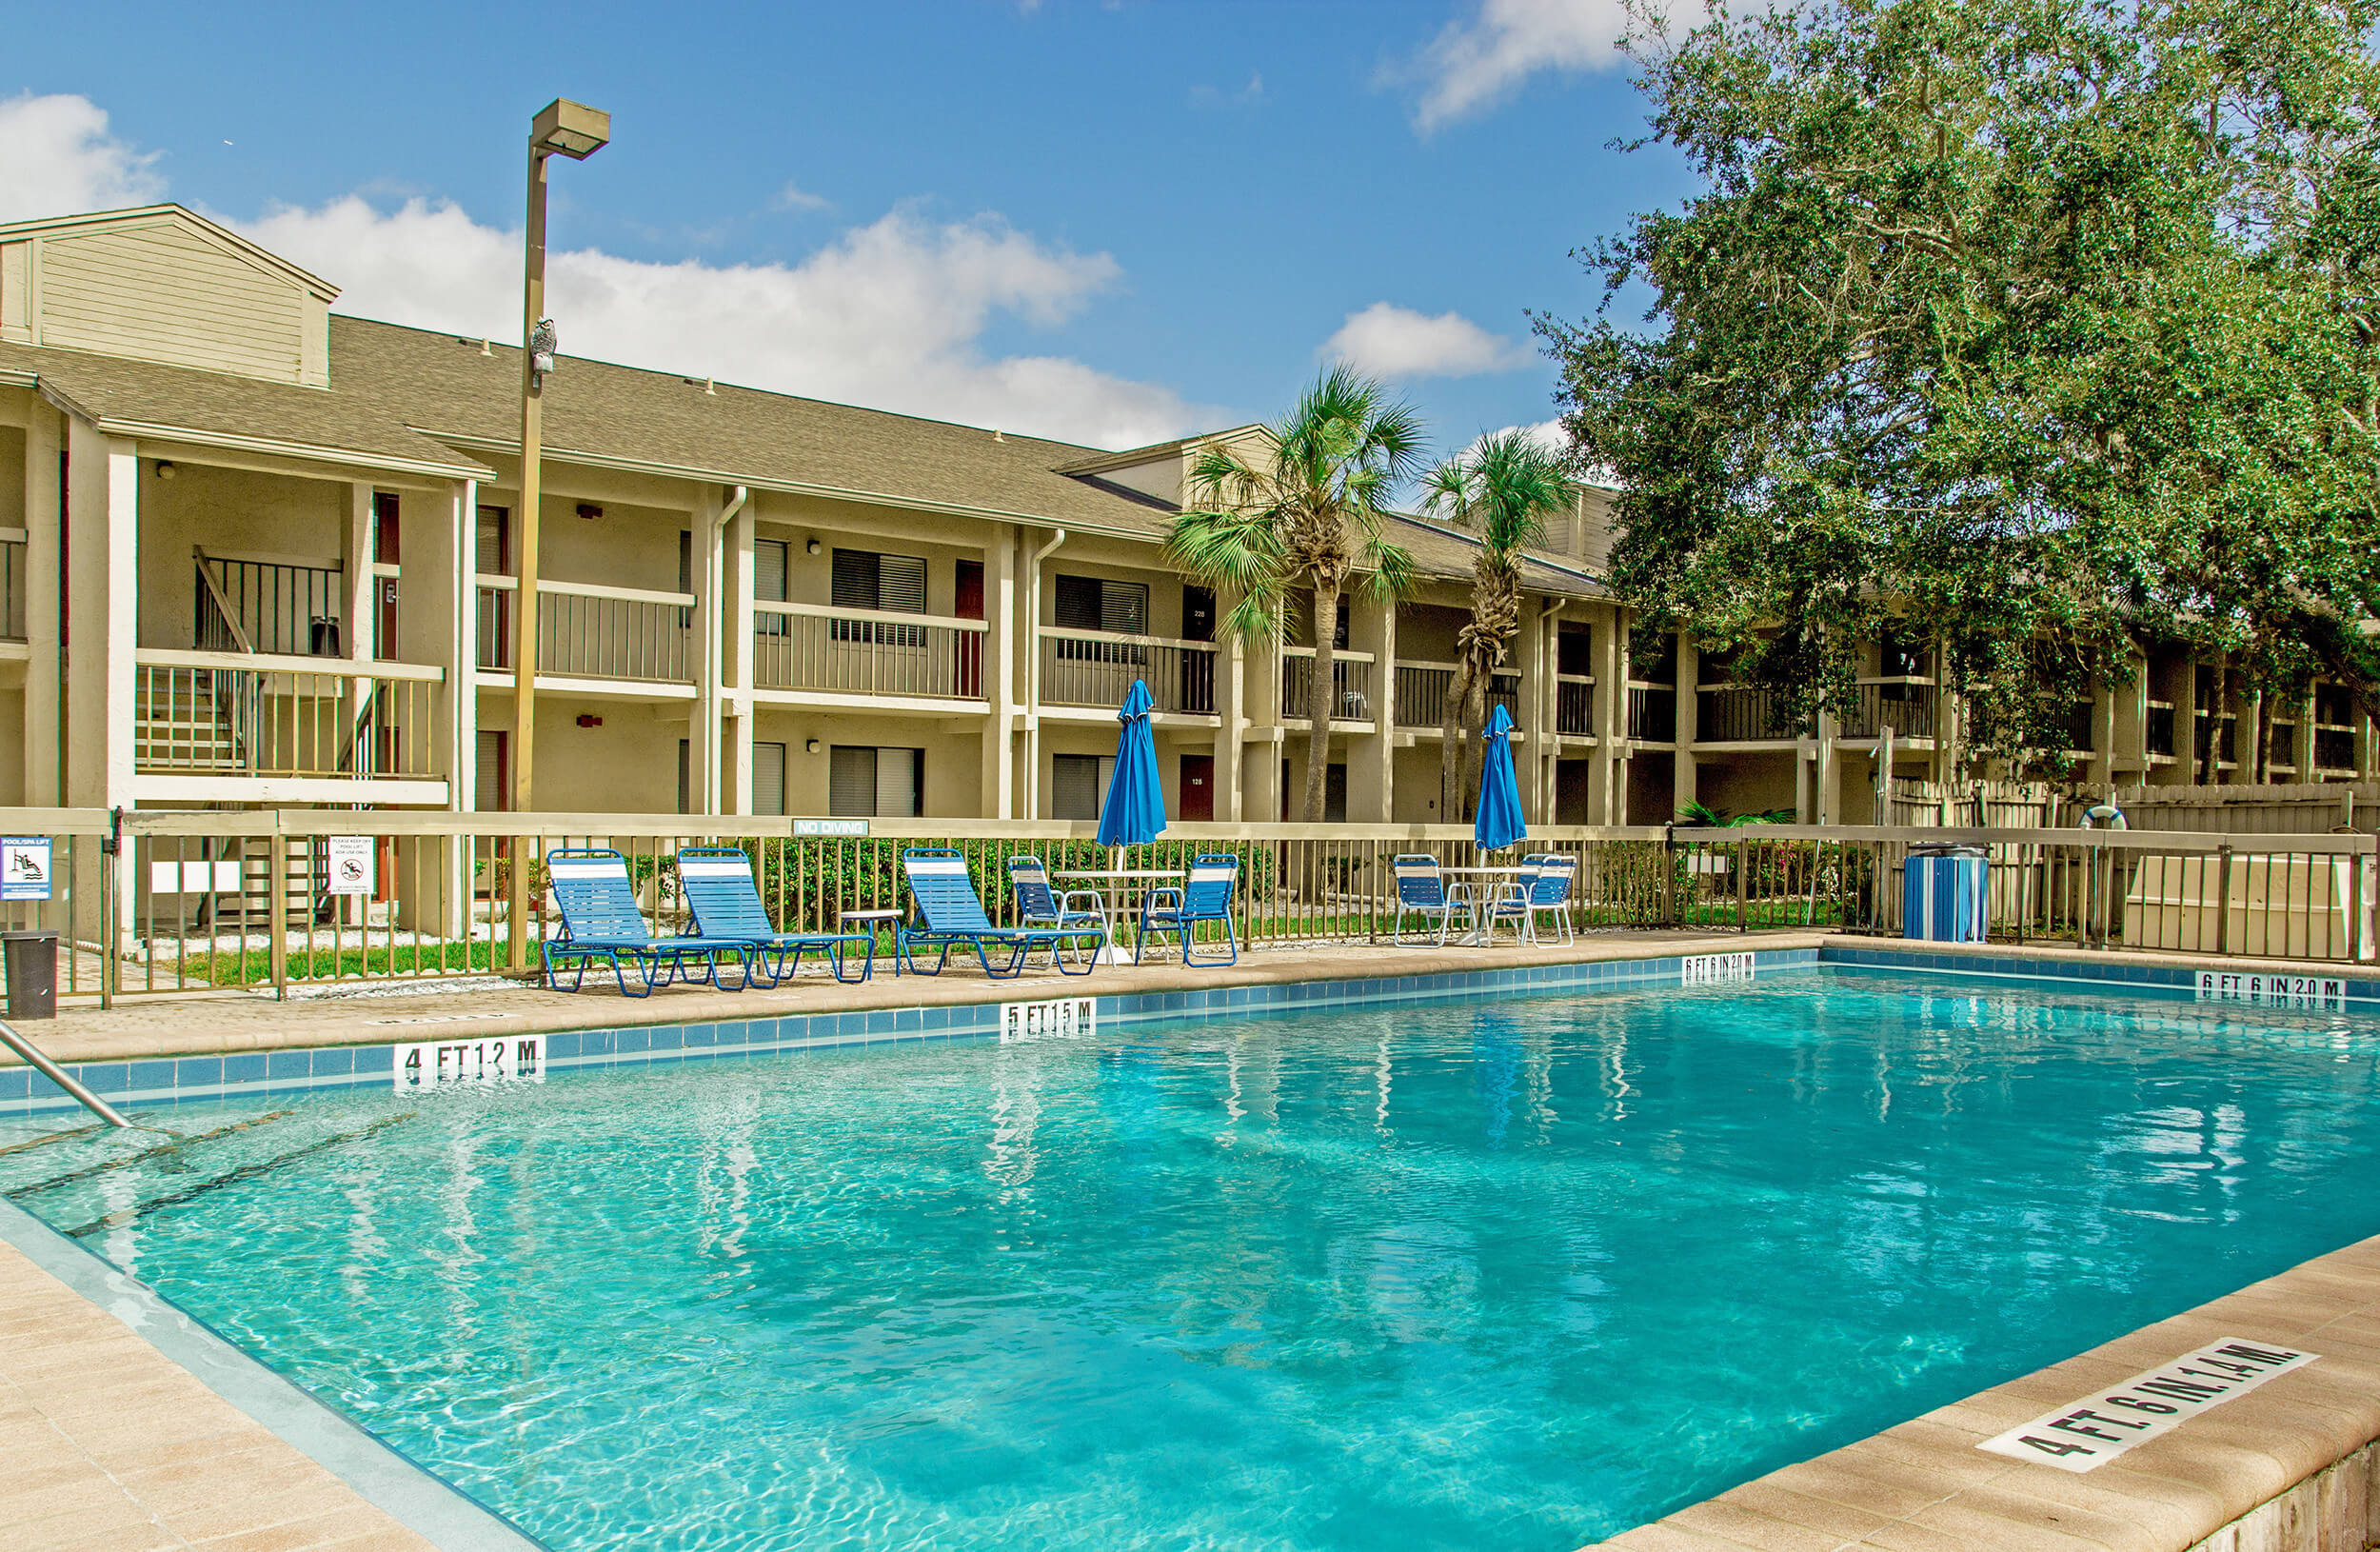 Club Orlando pool with lounge chairs, tables and umbrellas for shade | Club Orlando | Westgate Resorts